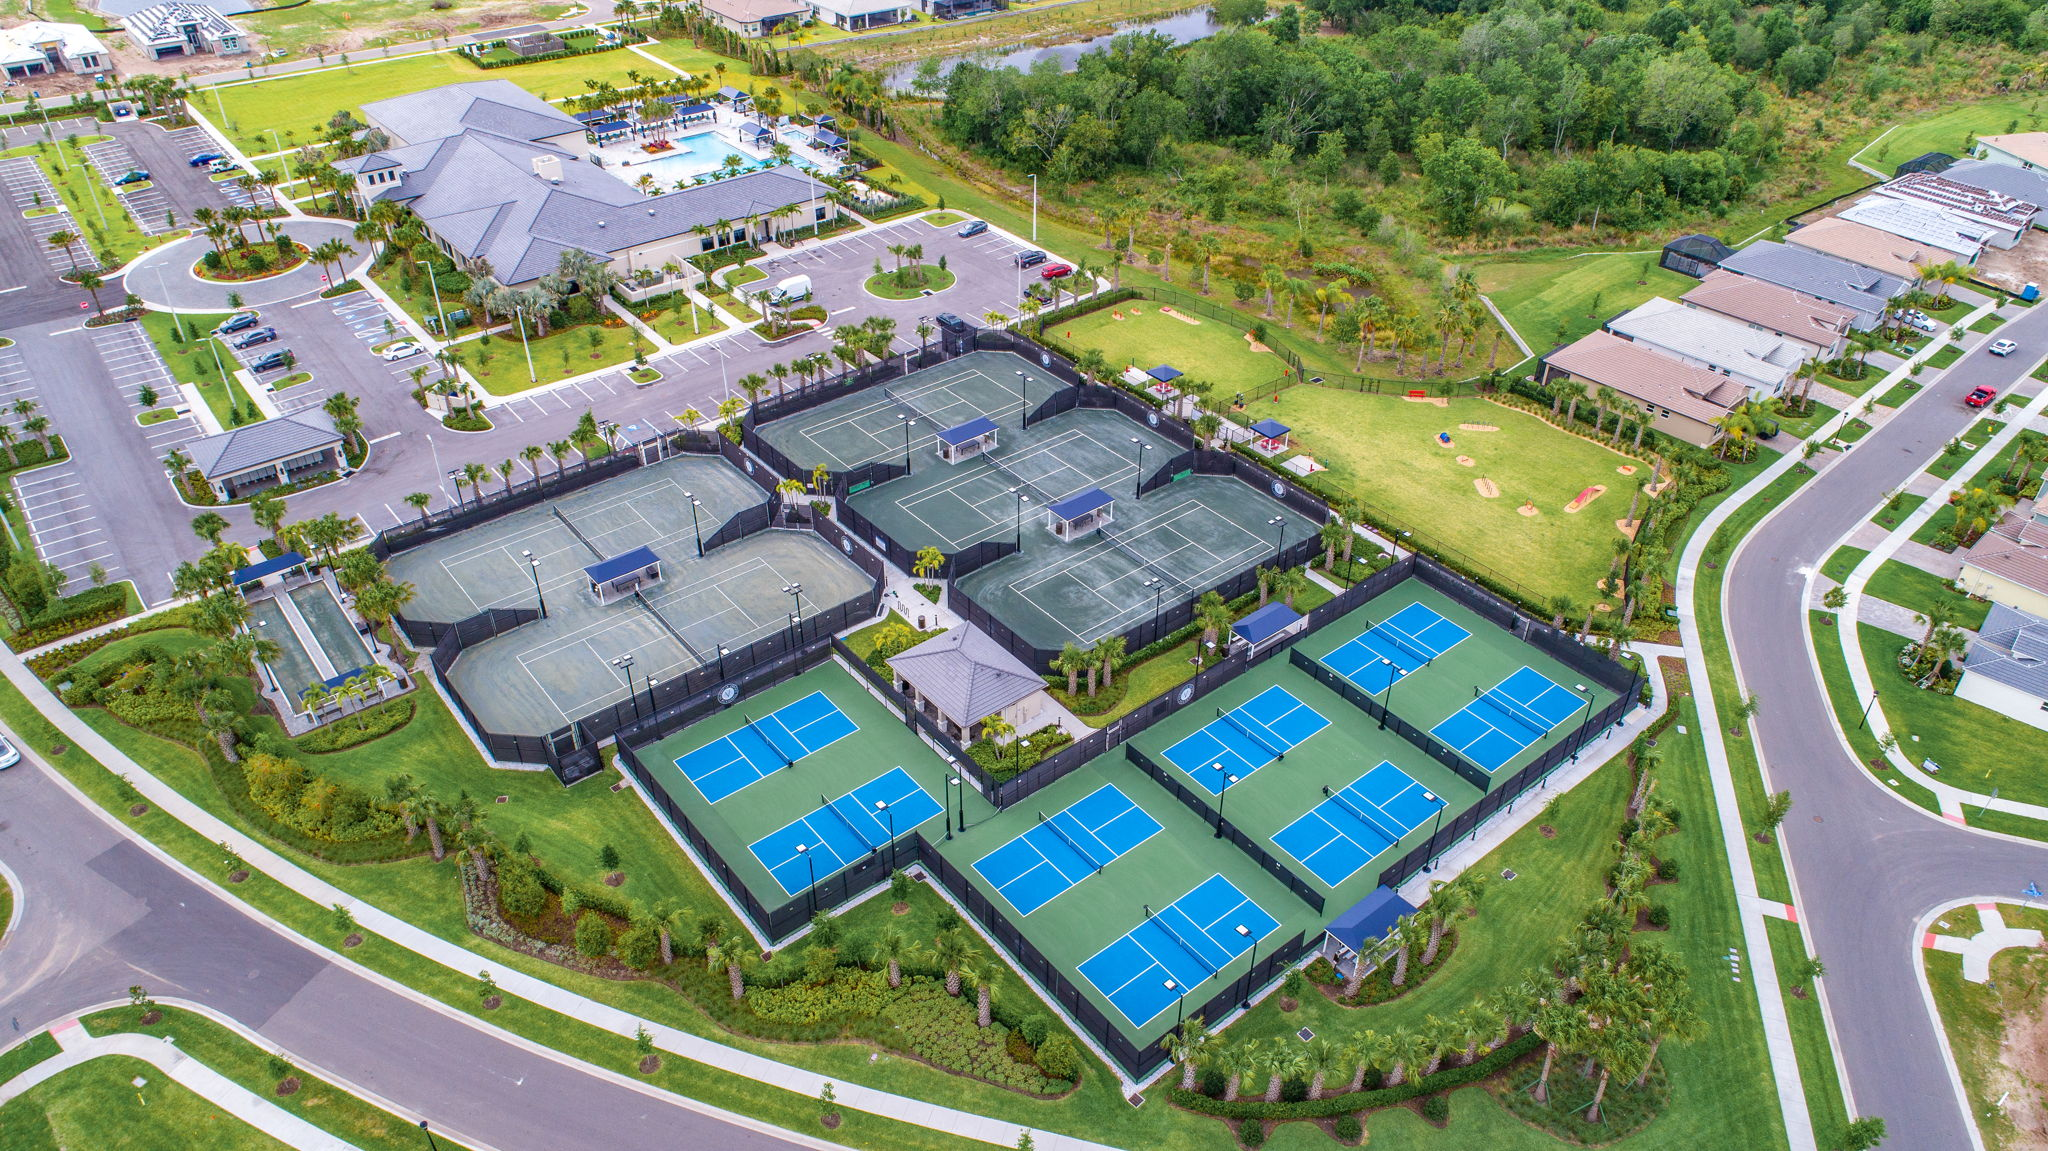 Tennis, Pickleball and Bocce Ball